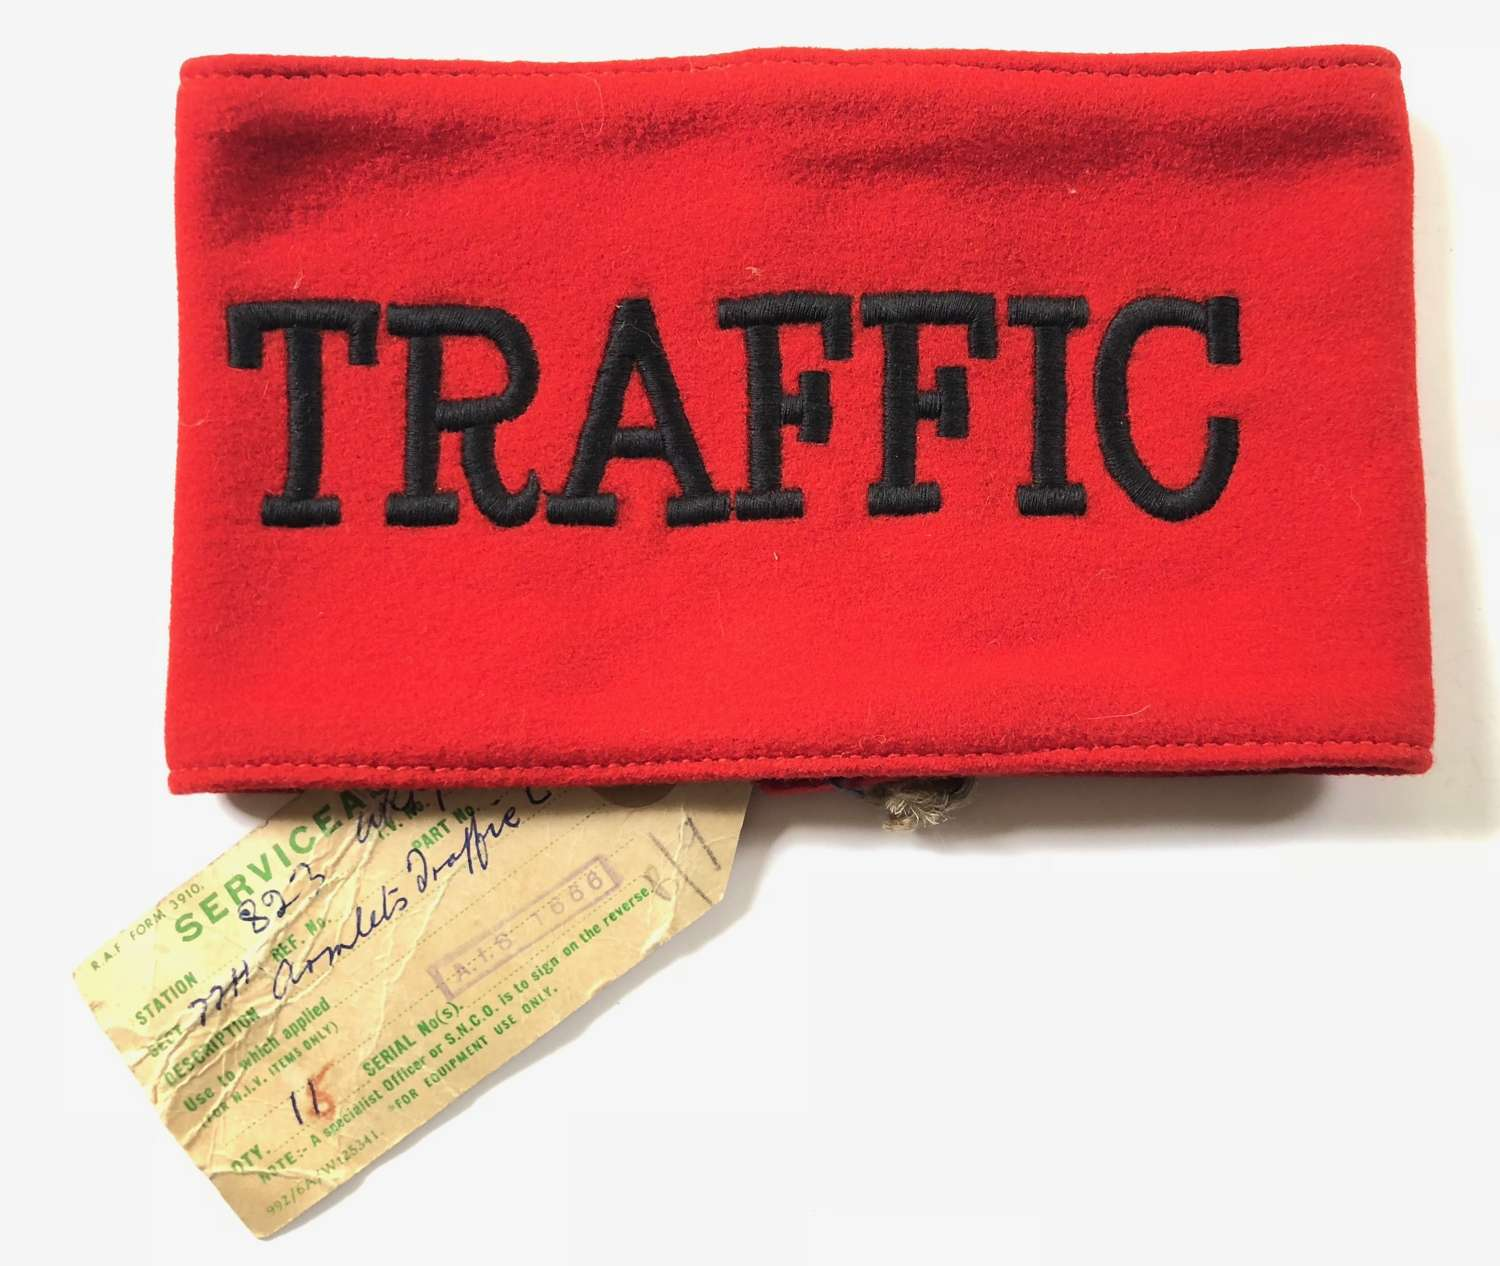 British Army Traffic Control Officer Armband.